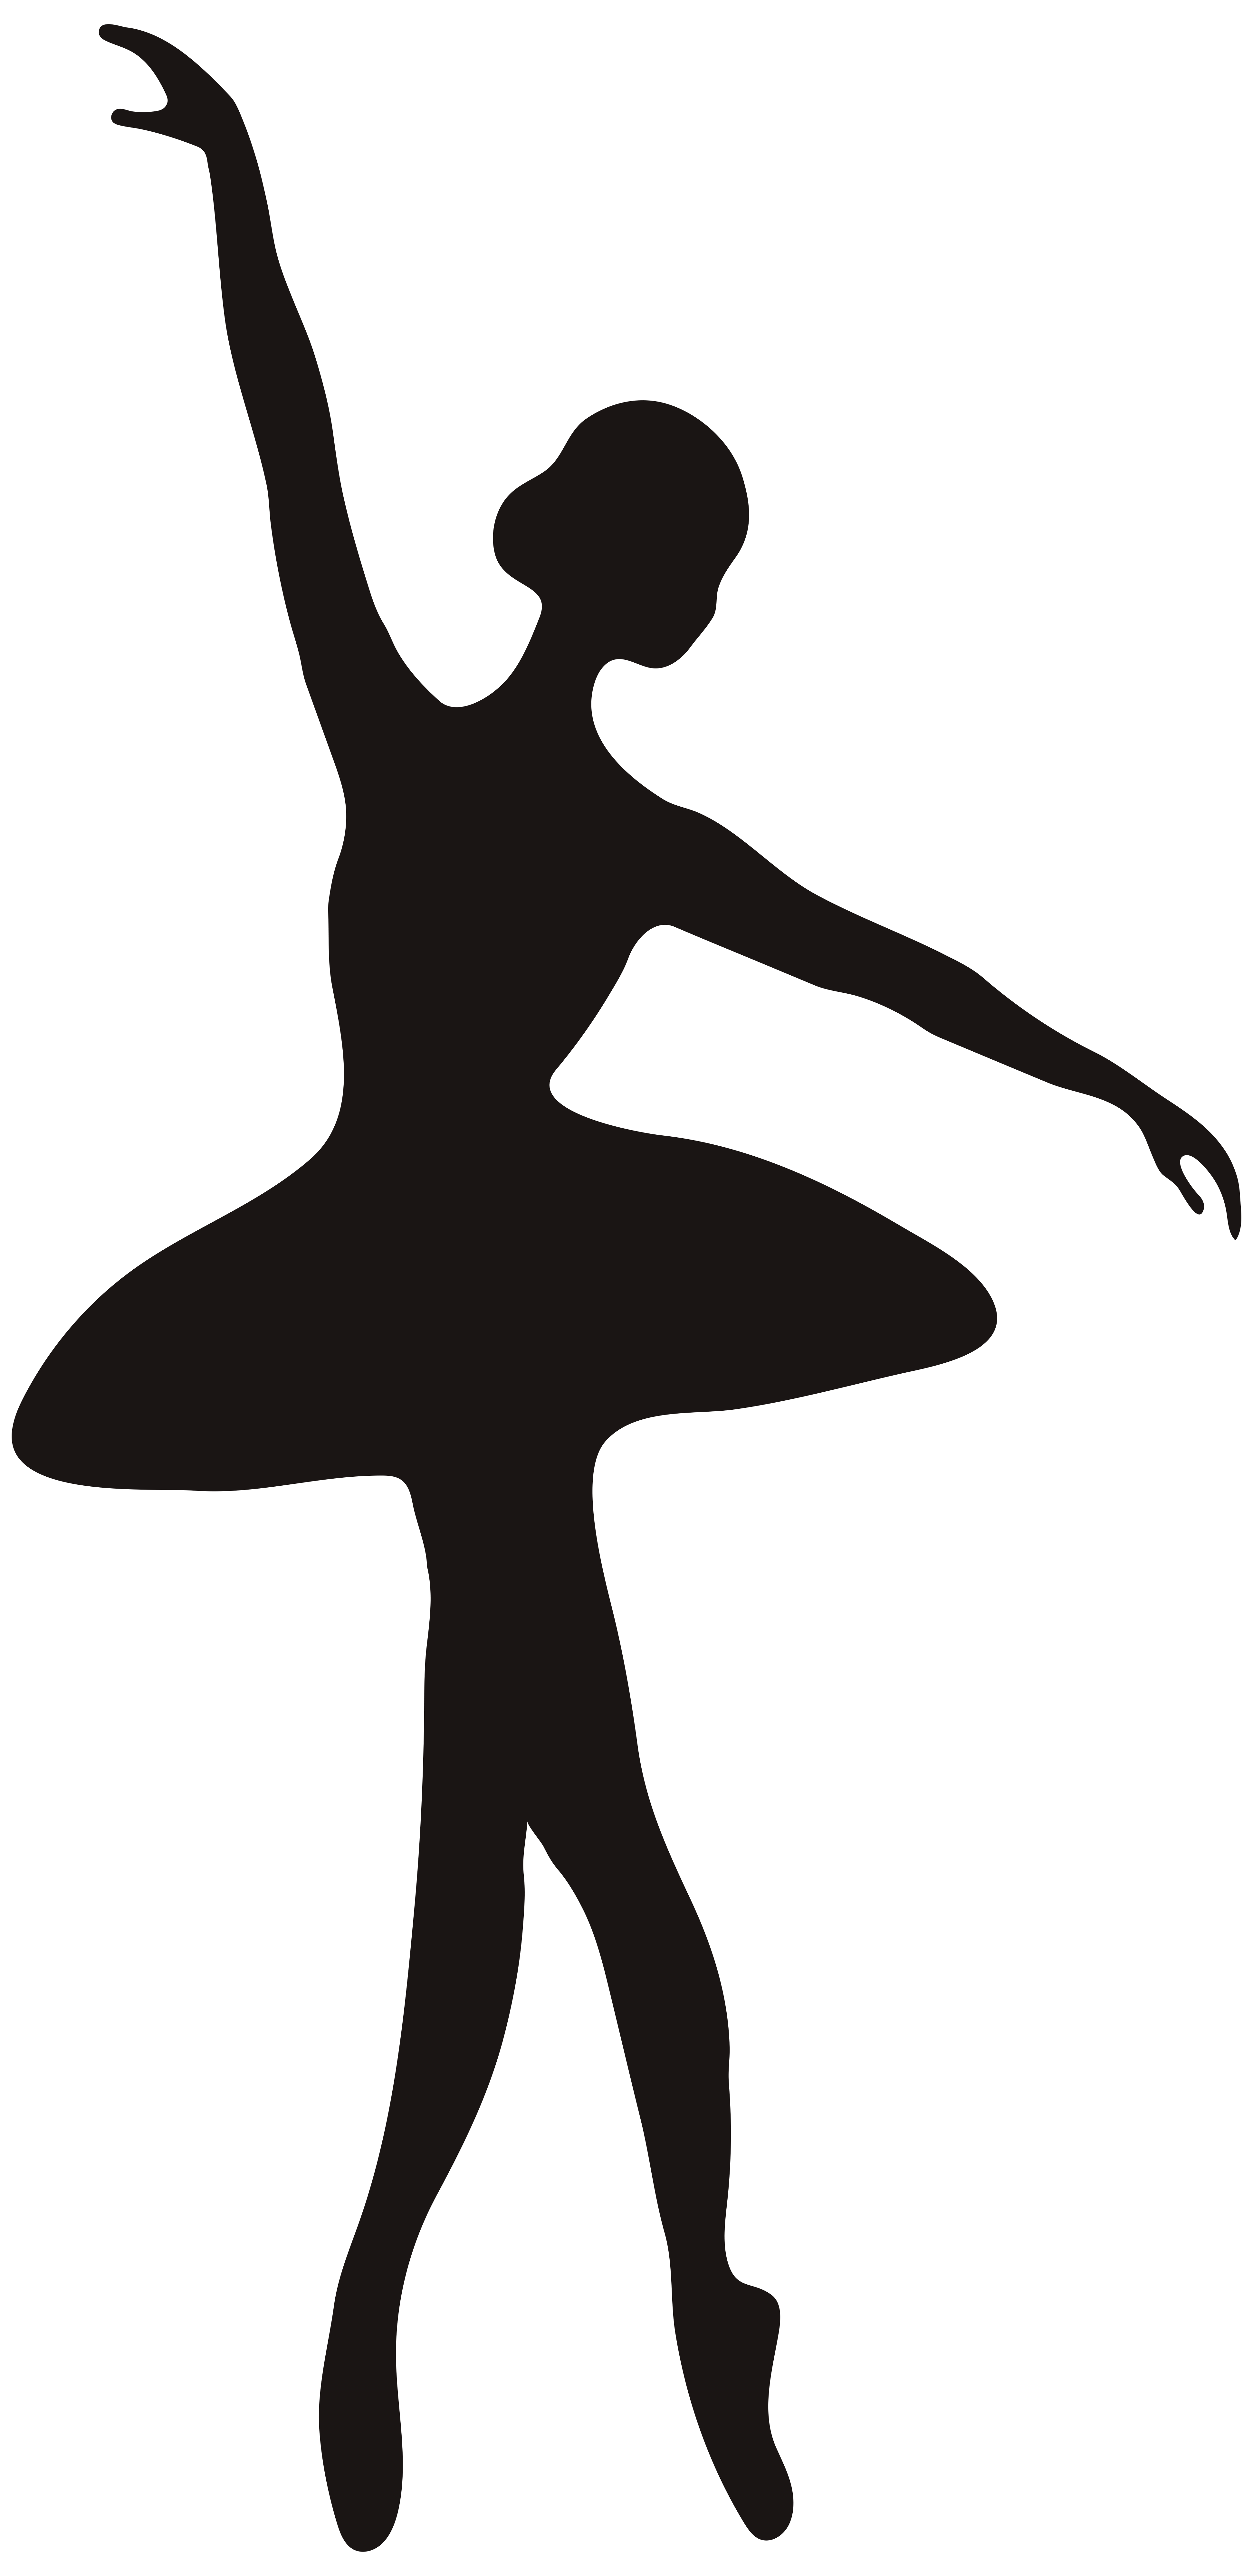 Ballet silhouette clipart vector black and white download Ballerina Silhouette PNG Clip Art Image | Gallery Yopriceville ... vector black and white download